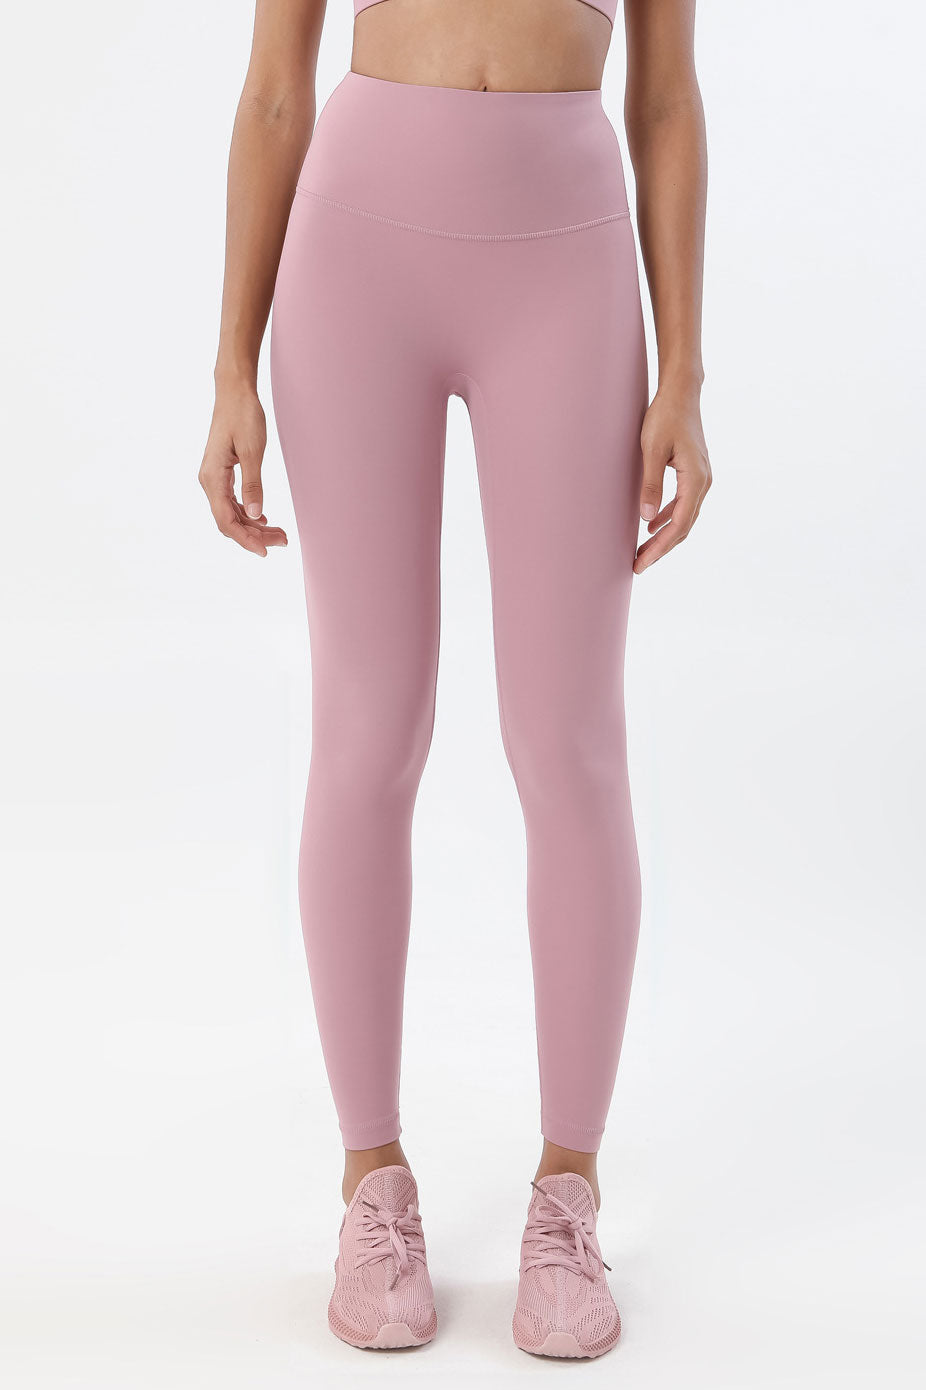 Ida High Waisted Full Length Leggings - Color: Lavender Pink - Zeebra Activewear